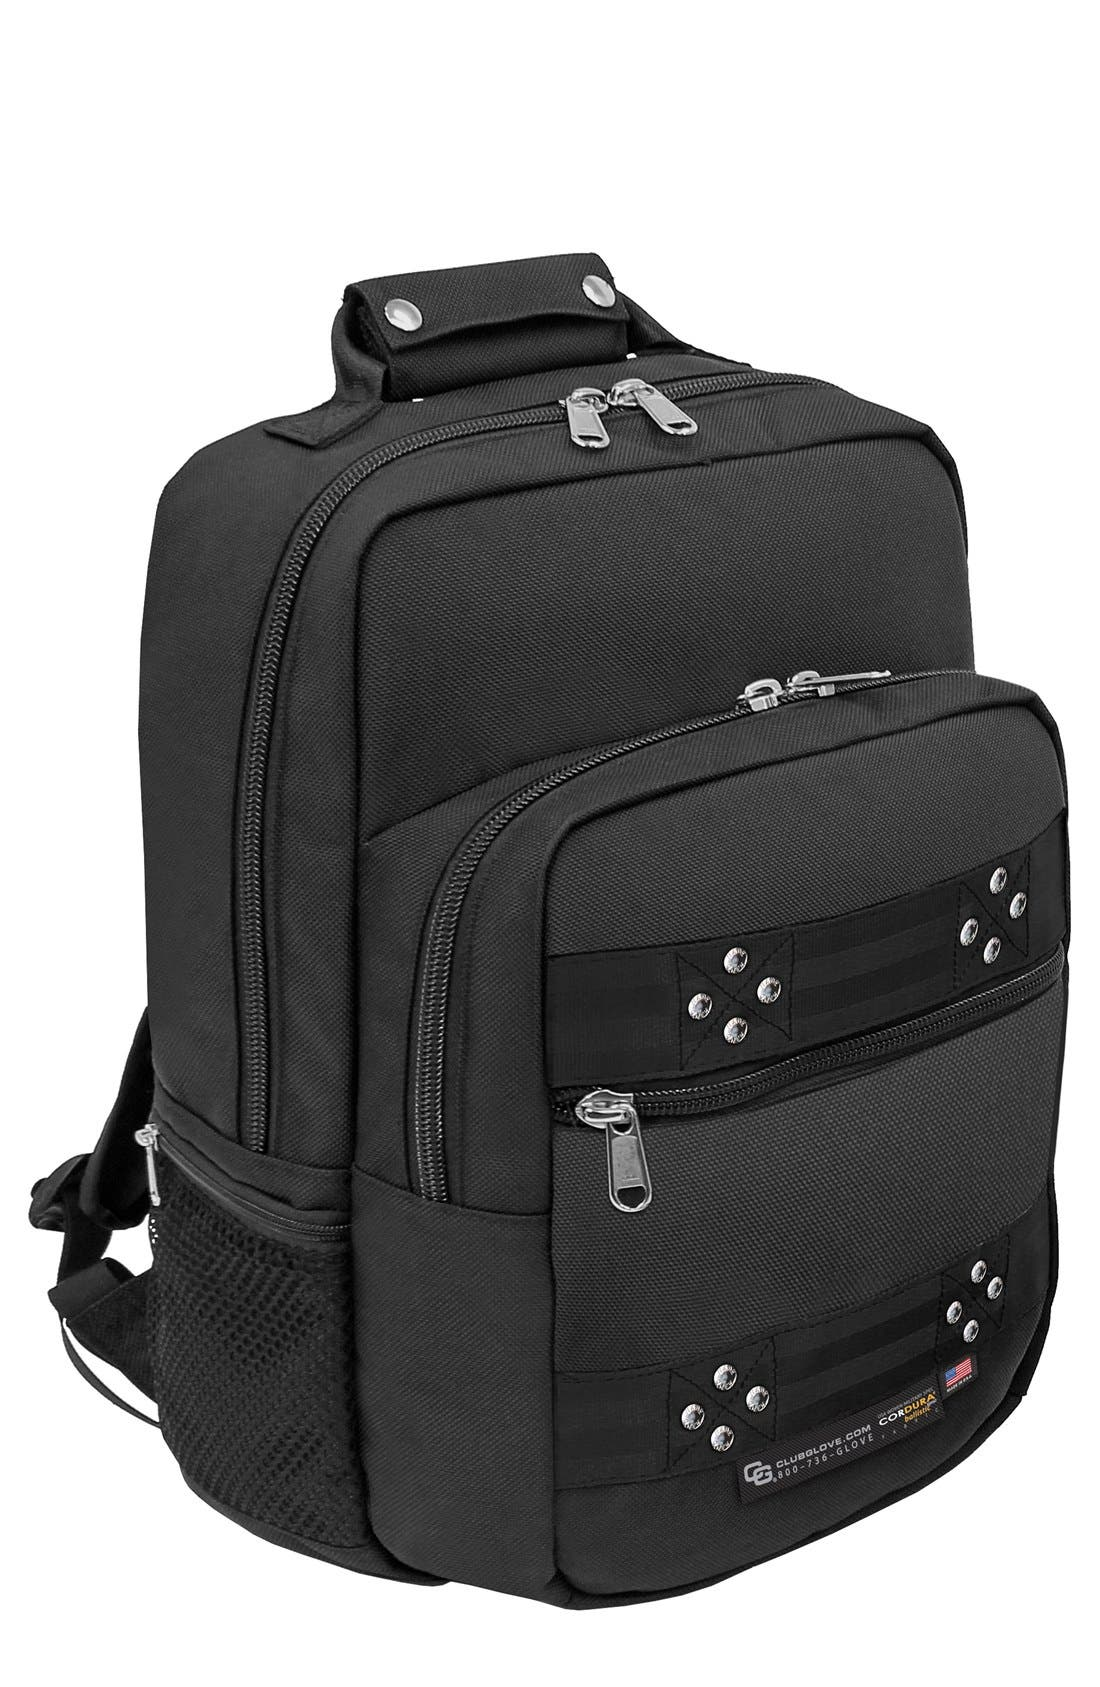 'TRS Ballistic - Executive' Backpack,                             Main thumbnail 1, color,                             BLACK/ BLACK